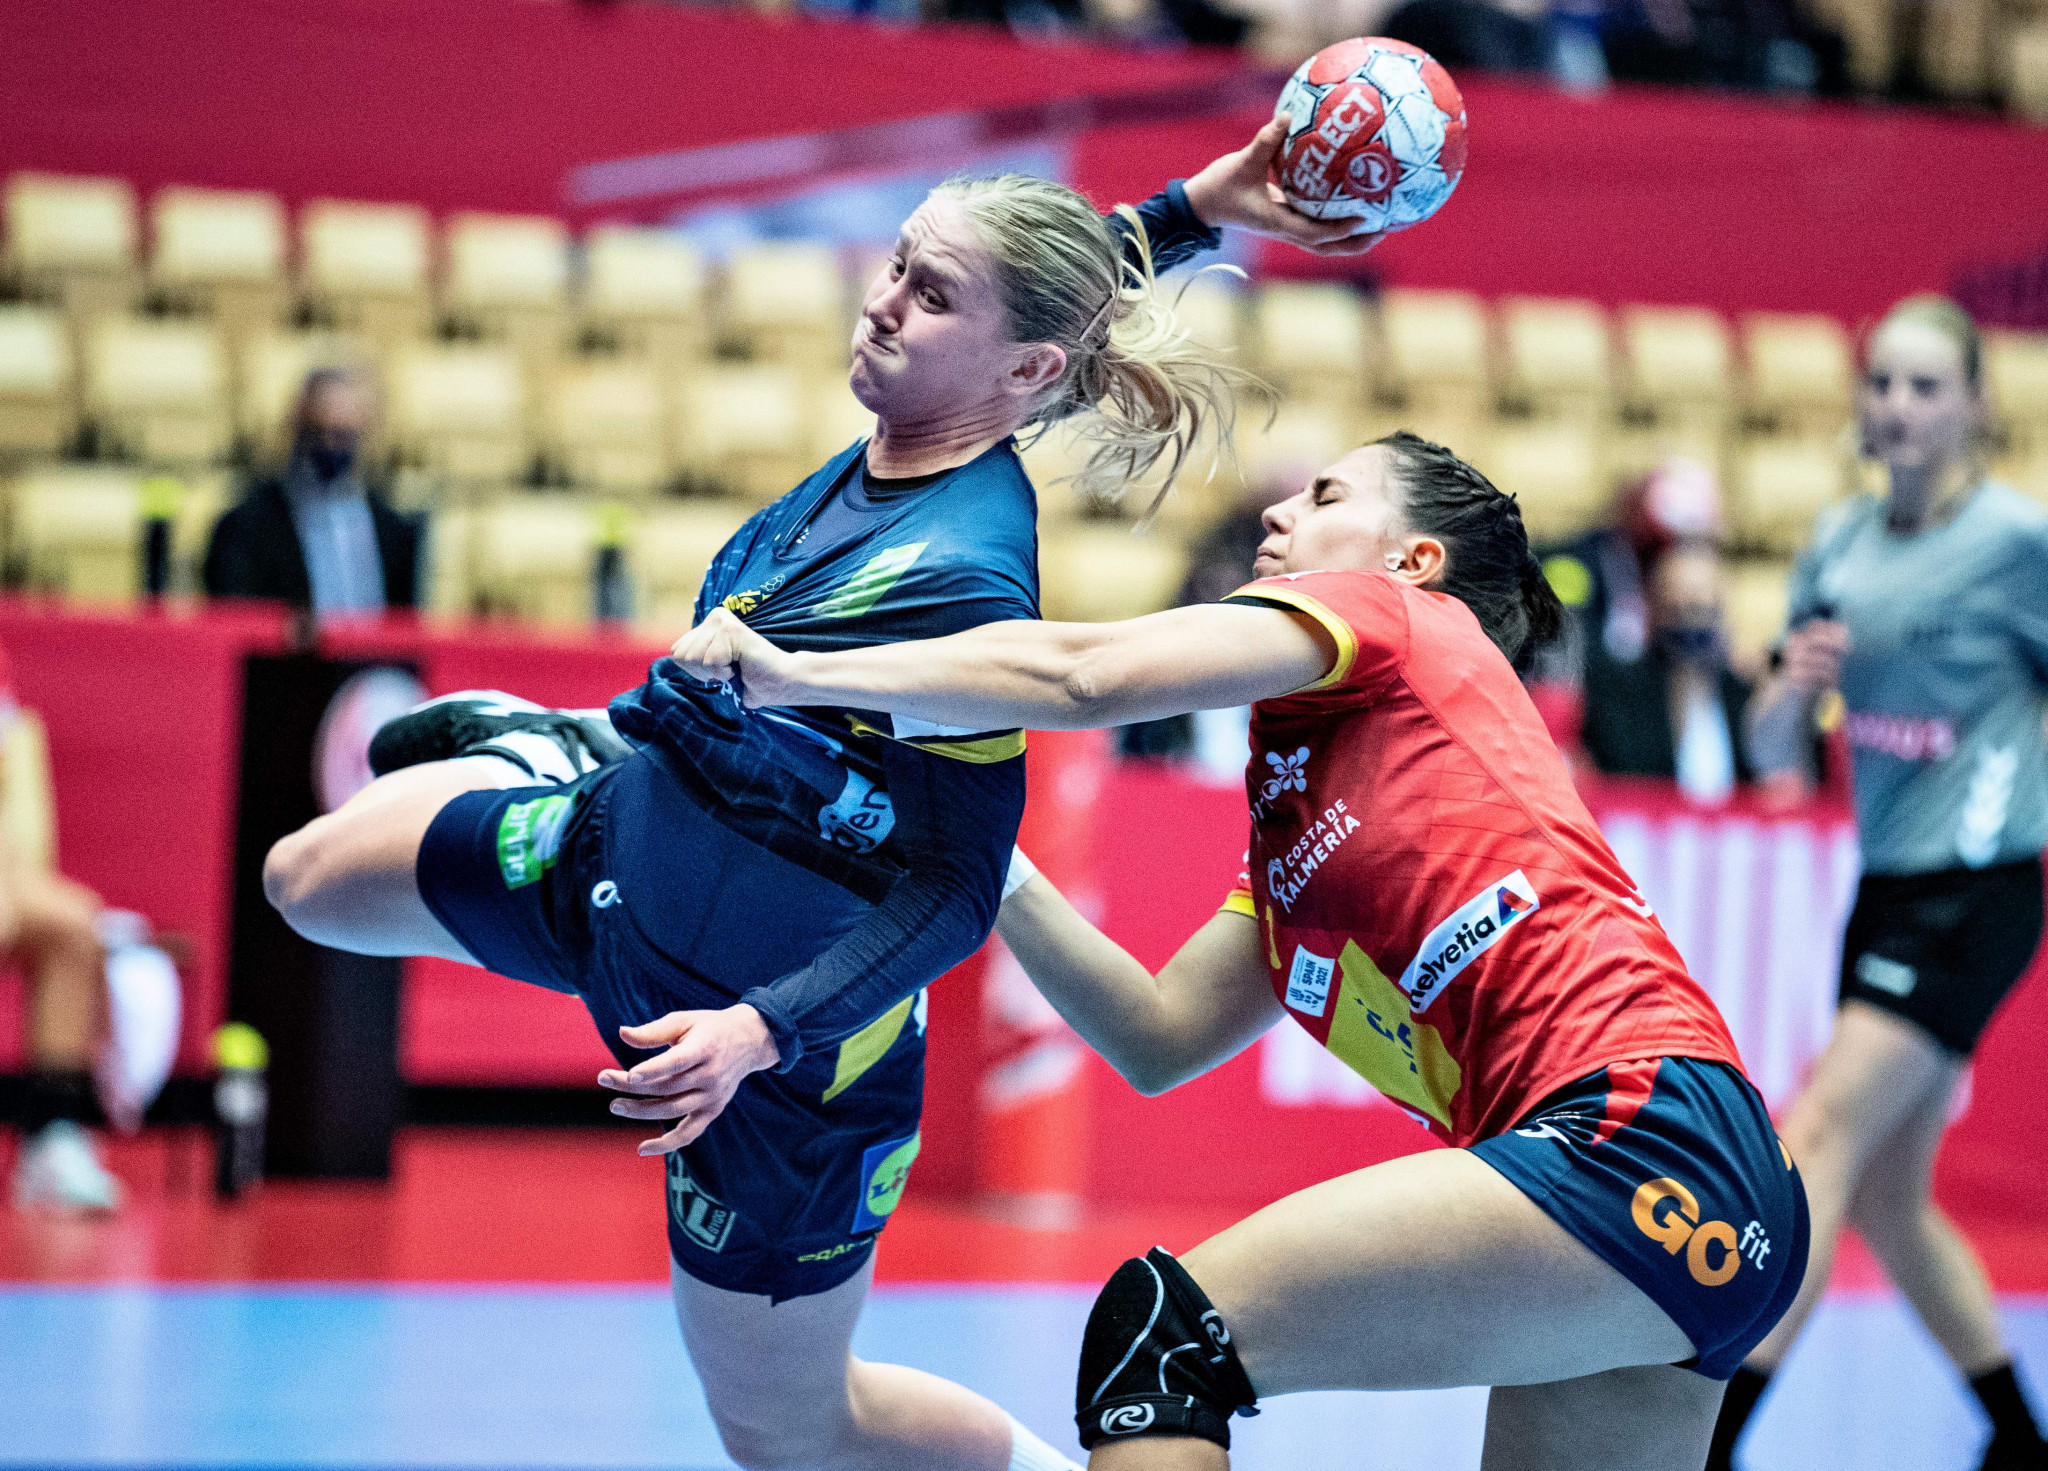 Serbia rebound from COVID-19 outbreak to beat world champions at European Women's Handball Championship